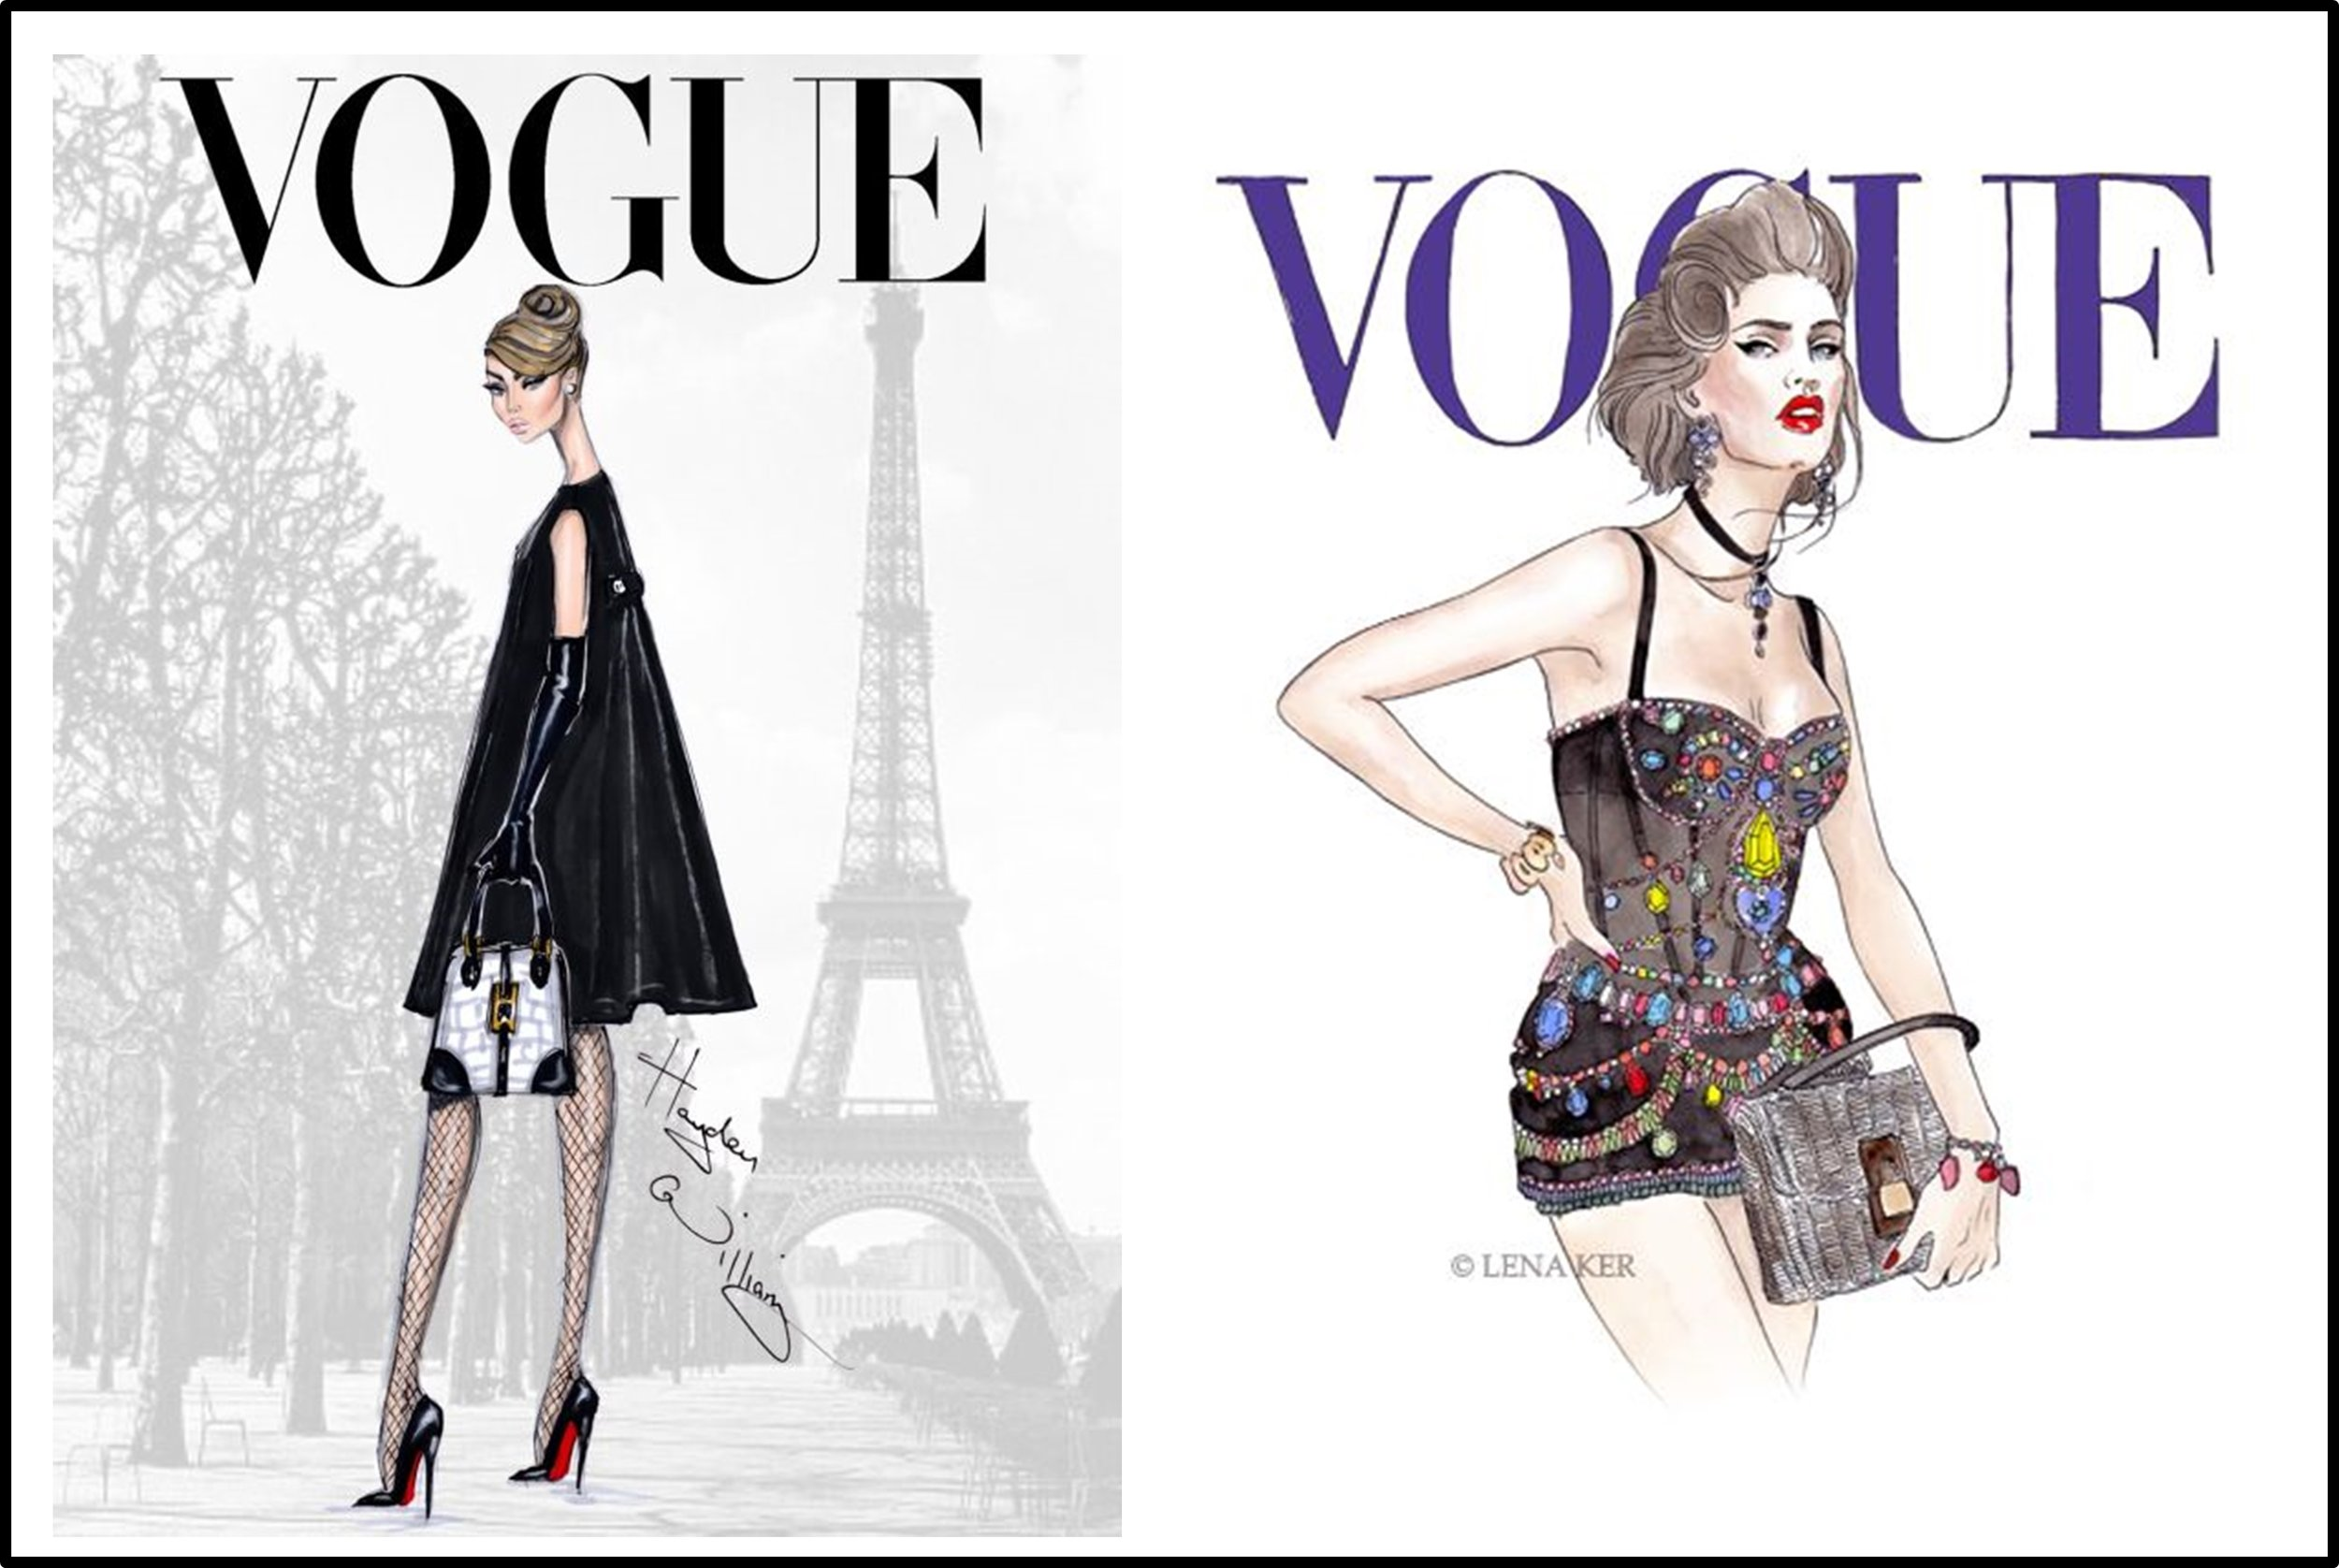 vogue fashion illustrated cover.jpg